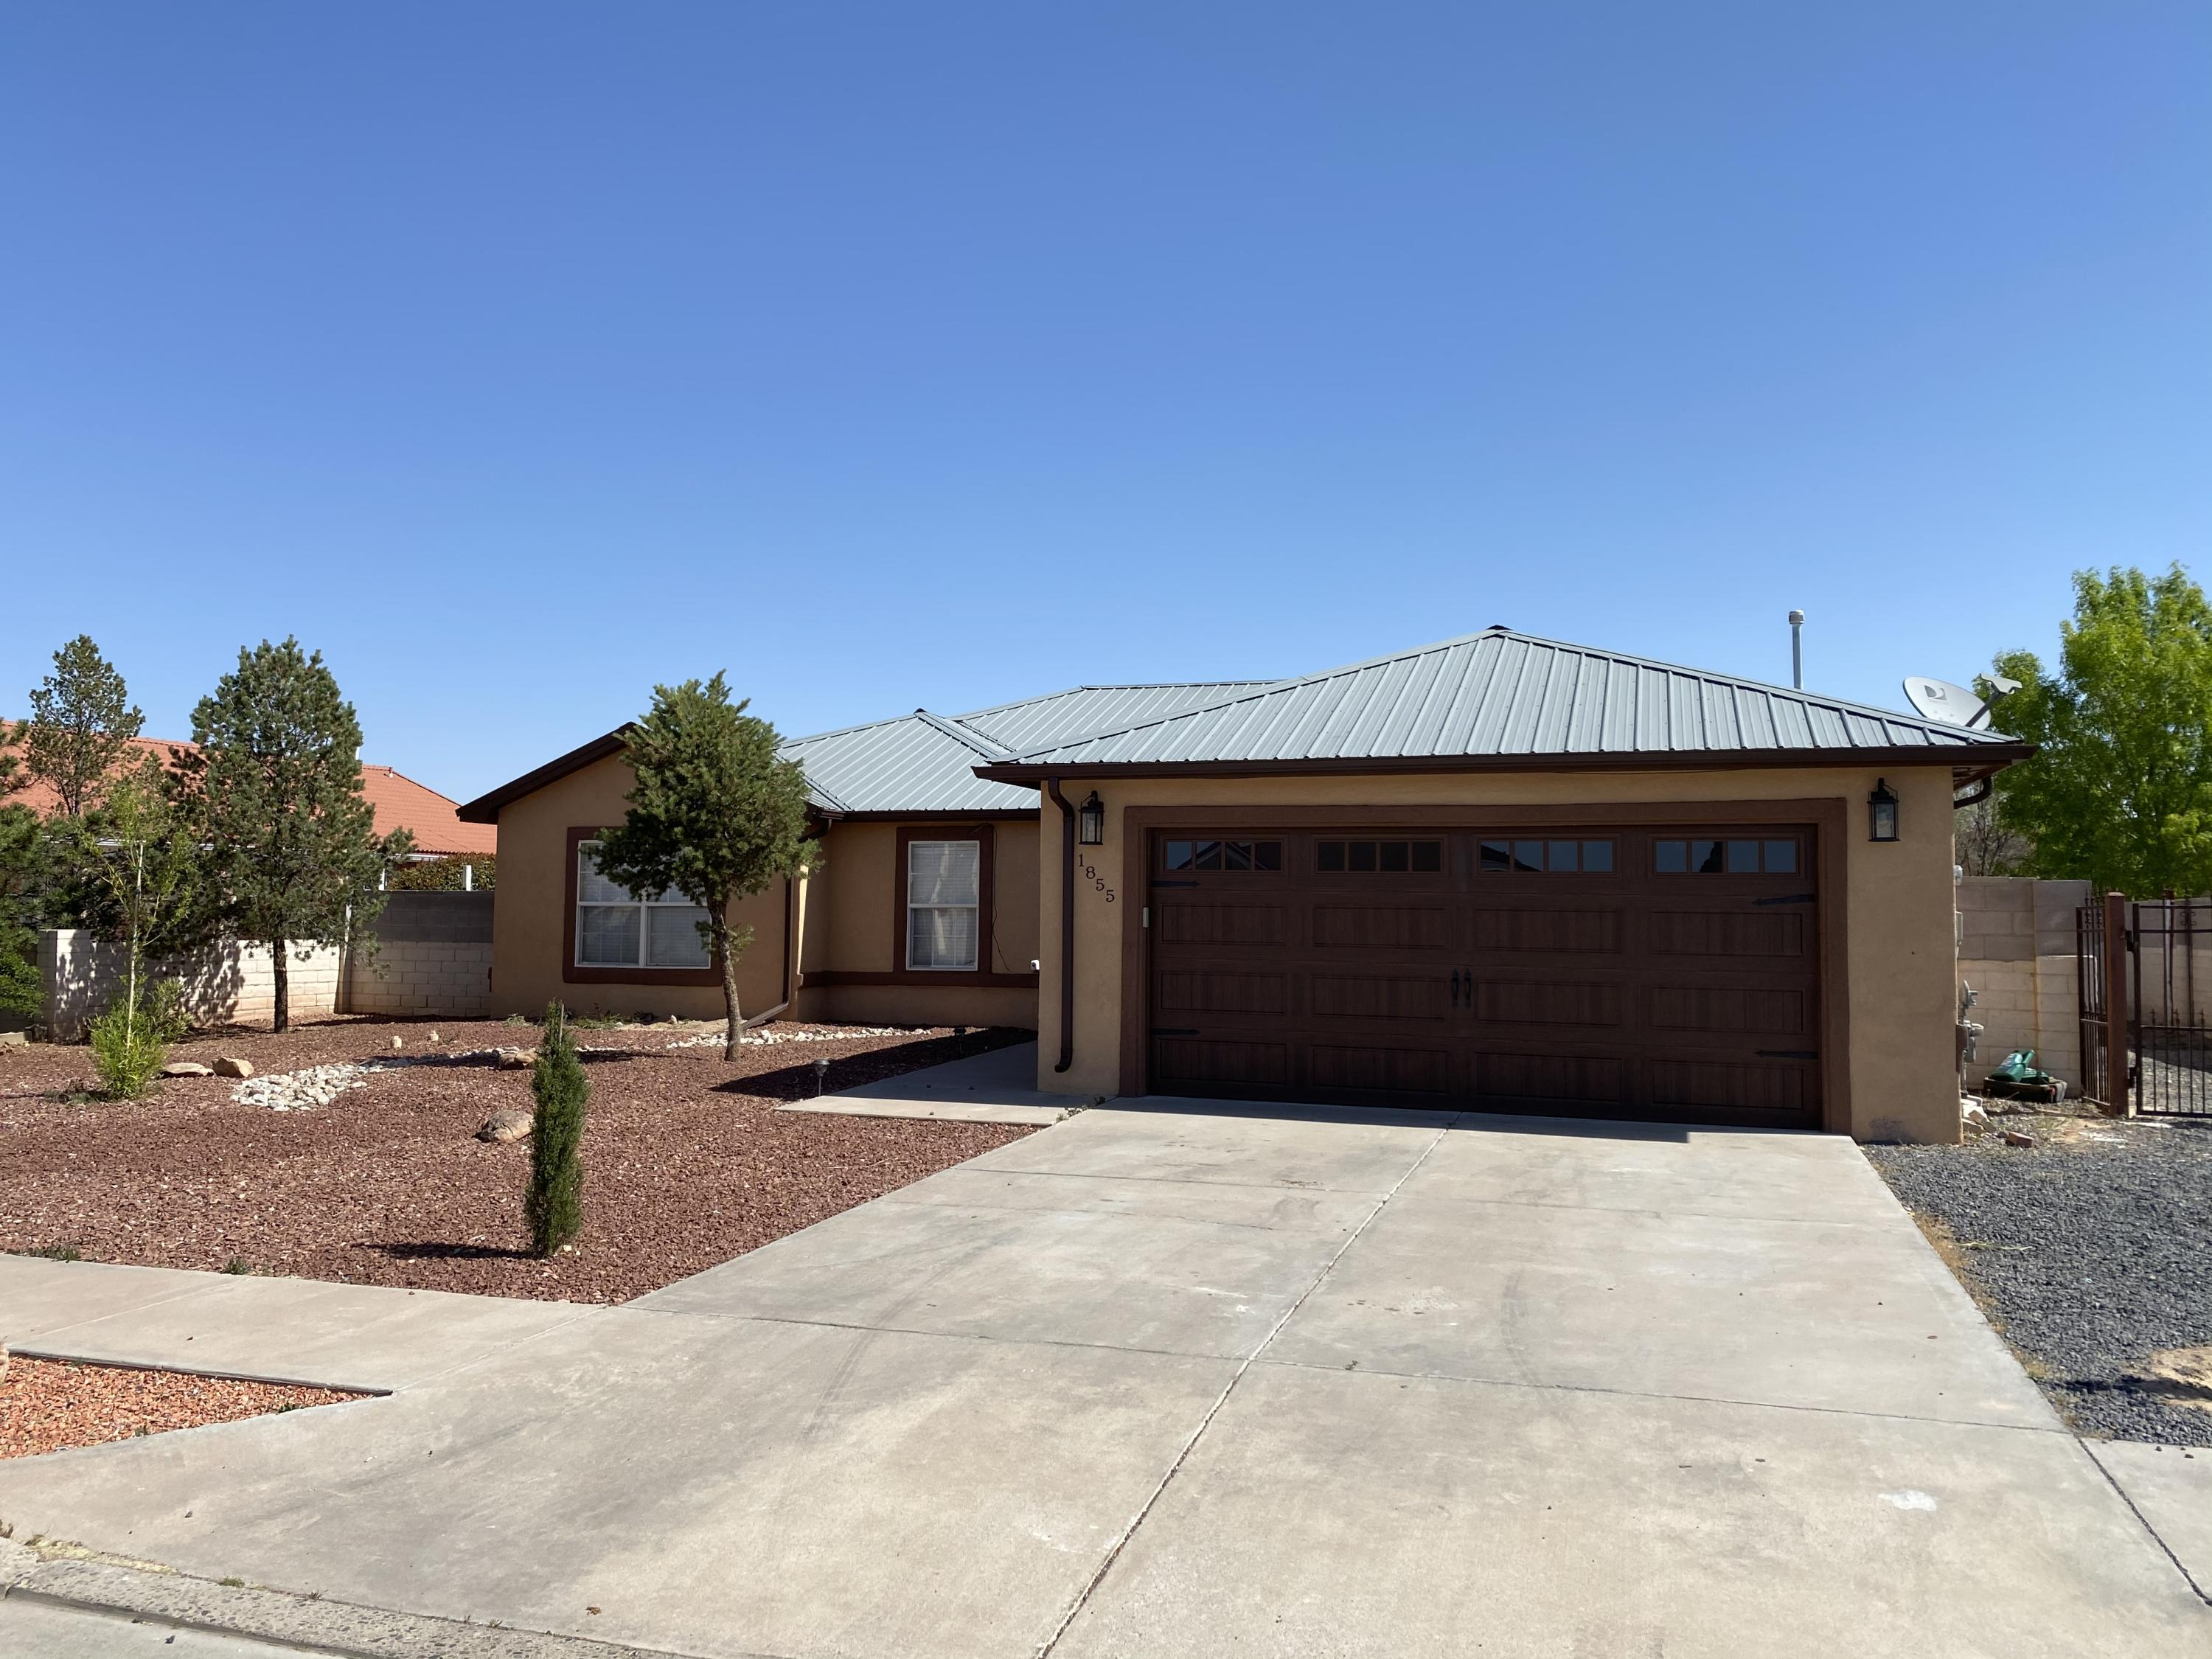 This very well maintained home ready for a new family. New carpet, Tile, Granite, paint and other updates. Open concept with 4 Bedrooms and an office. Back yard access for the toys and trailers. So much to offer for the entertainers with the covered back patio also. It wont last. Come see today